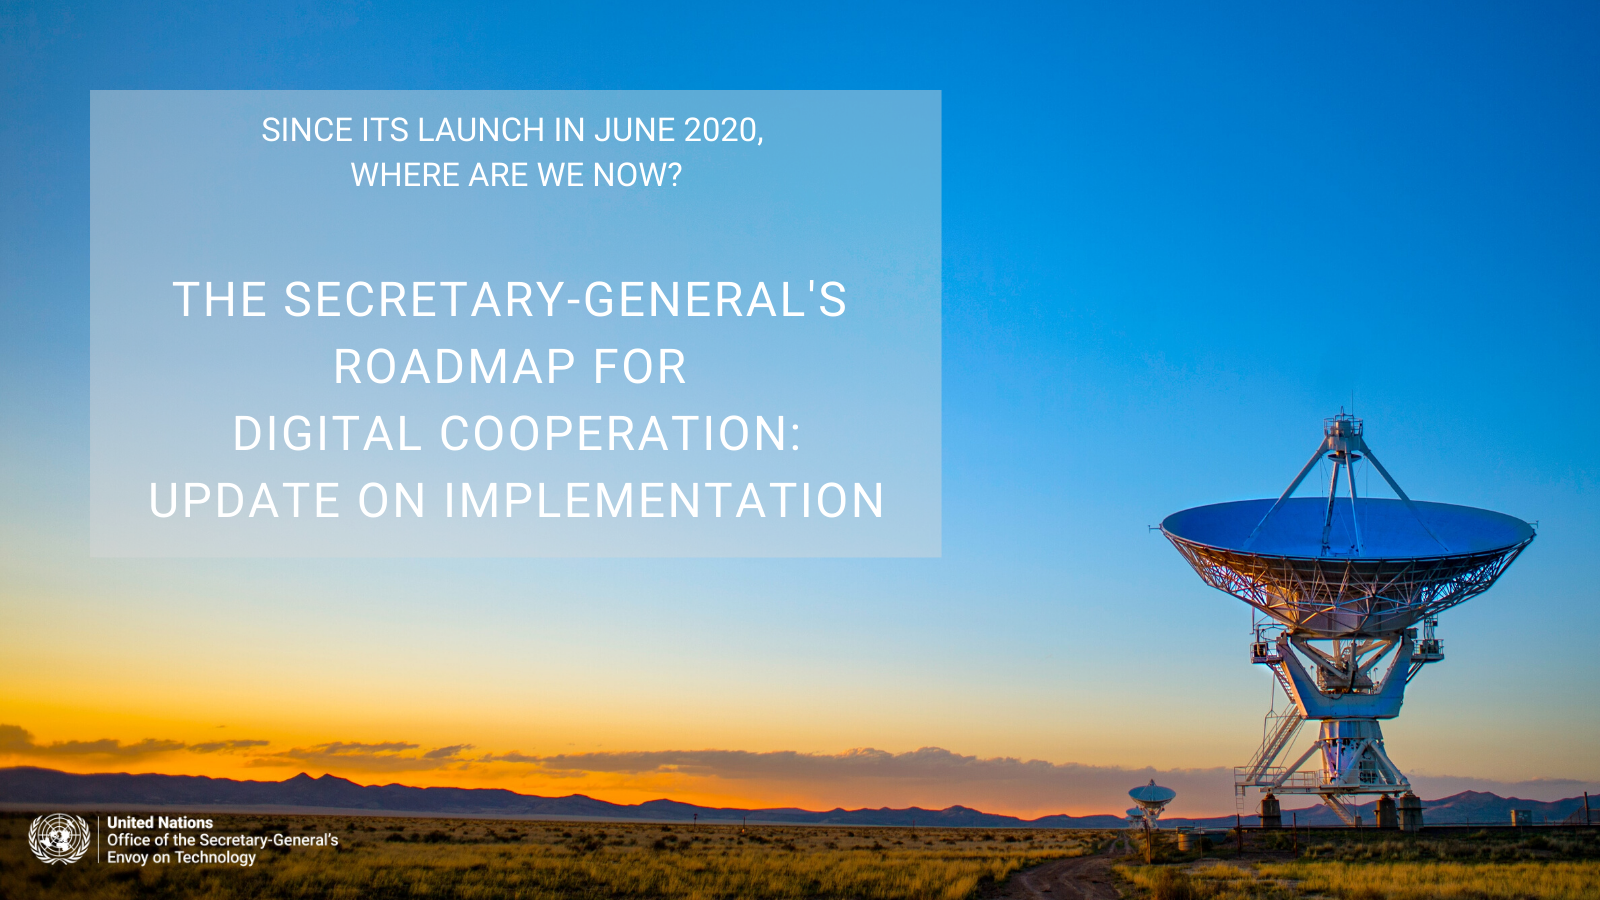 The Secretary-General's roadmap for digital cooperation - update on implementation